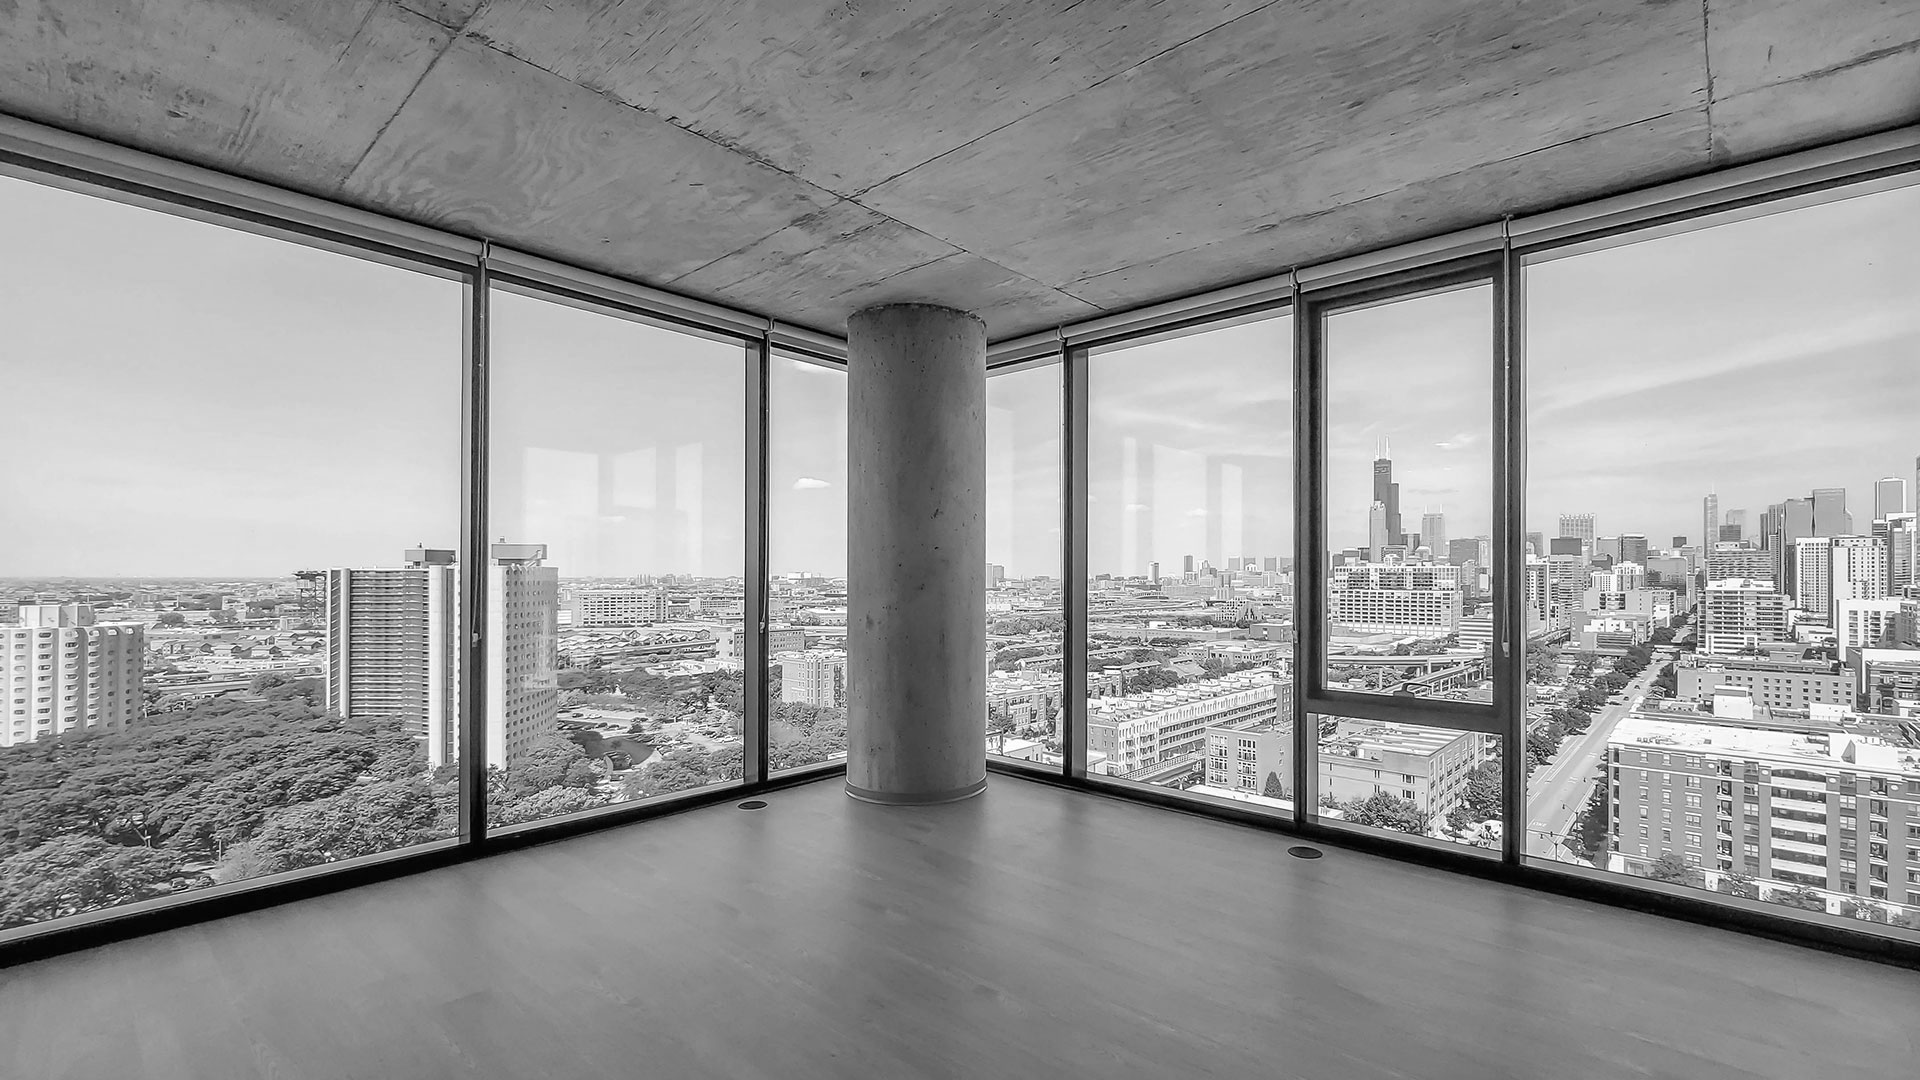 An open room to show the concrete ceiling and the exposed concrete column in the center. Floor-to-ceiling windows are on each side with the Chicago skyline seen in the distance.